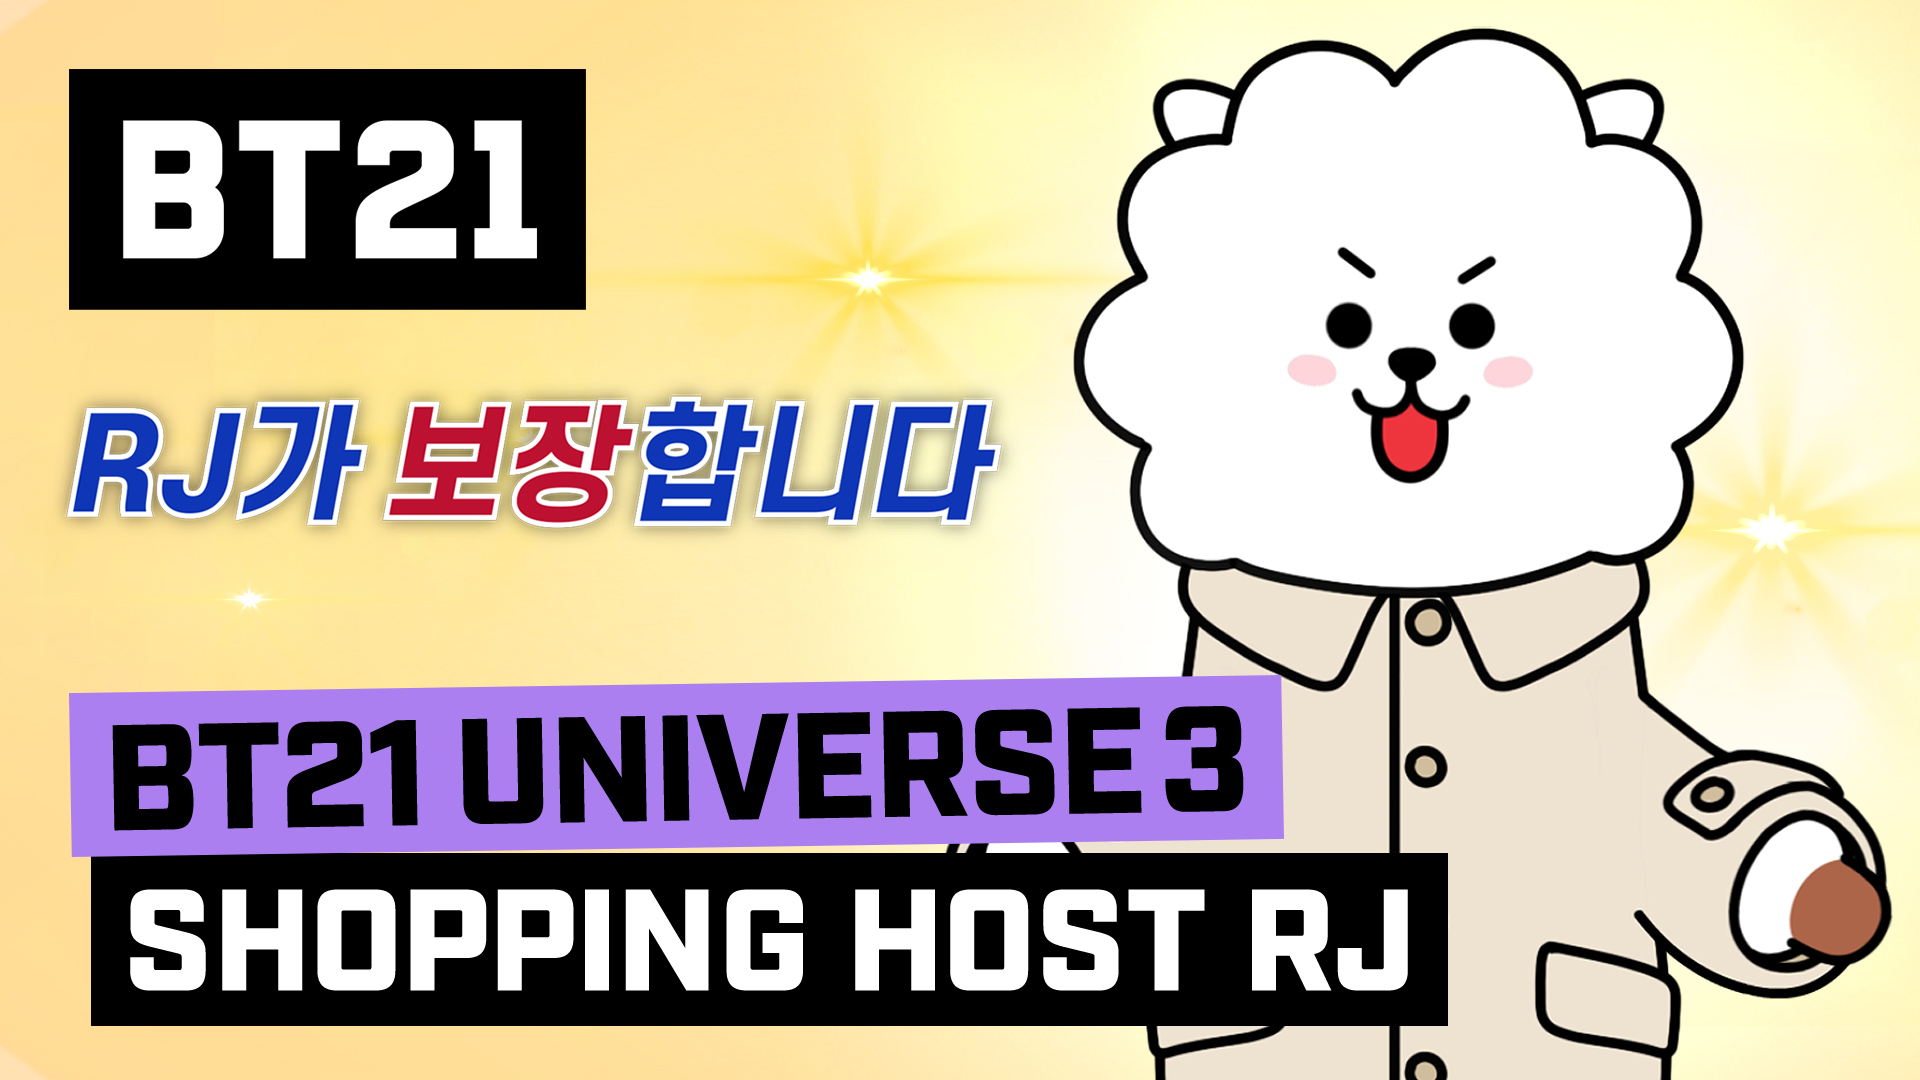 BT21 UNIVERSE 3 ANIMATION EP.01 - Shopping Host RJ